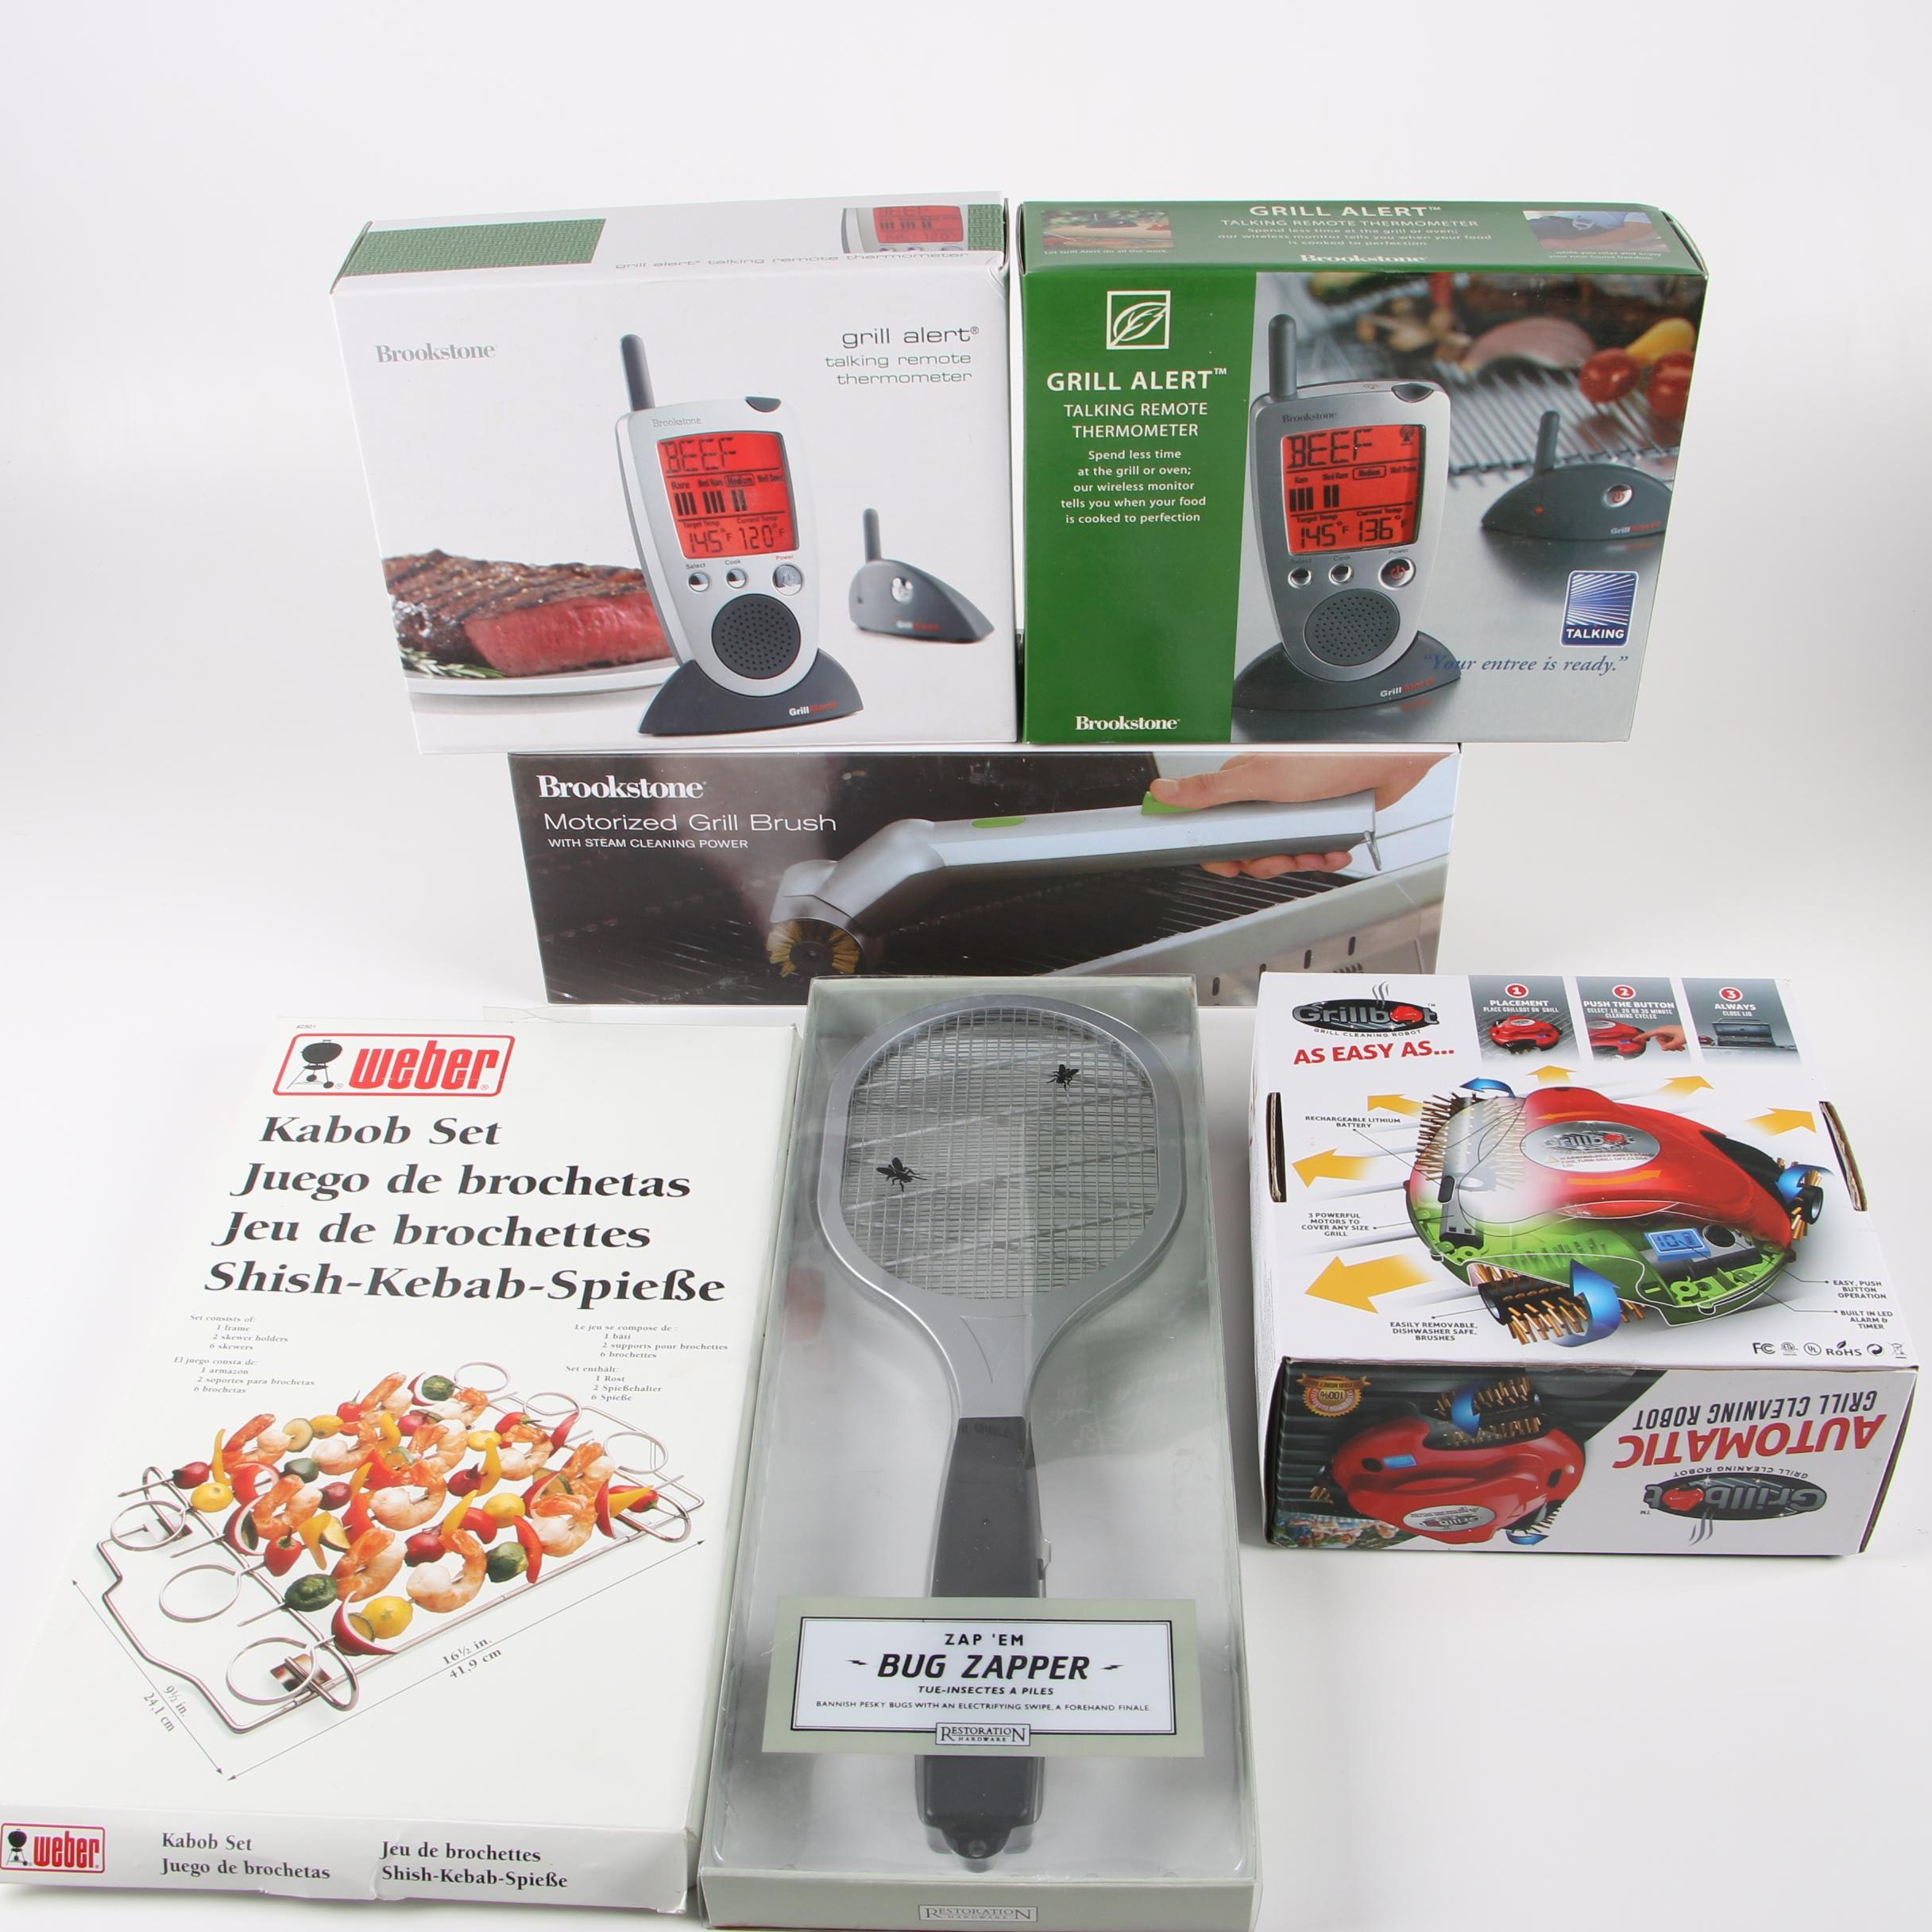 Grill Accessories featuring Weber Kabob Set and Brookstone Brush and Thermometer